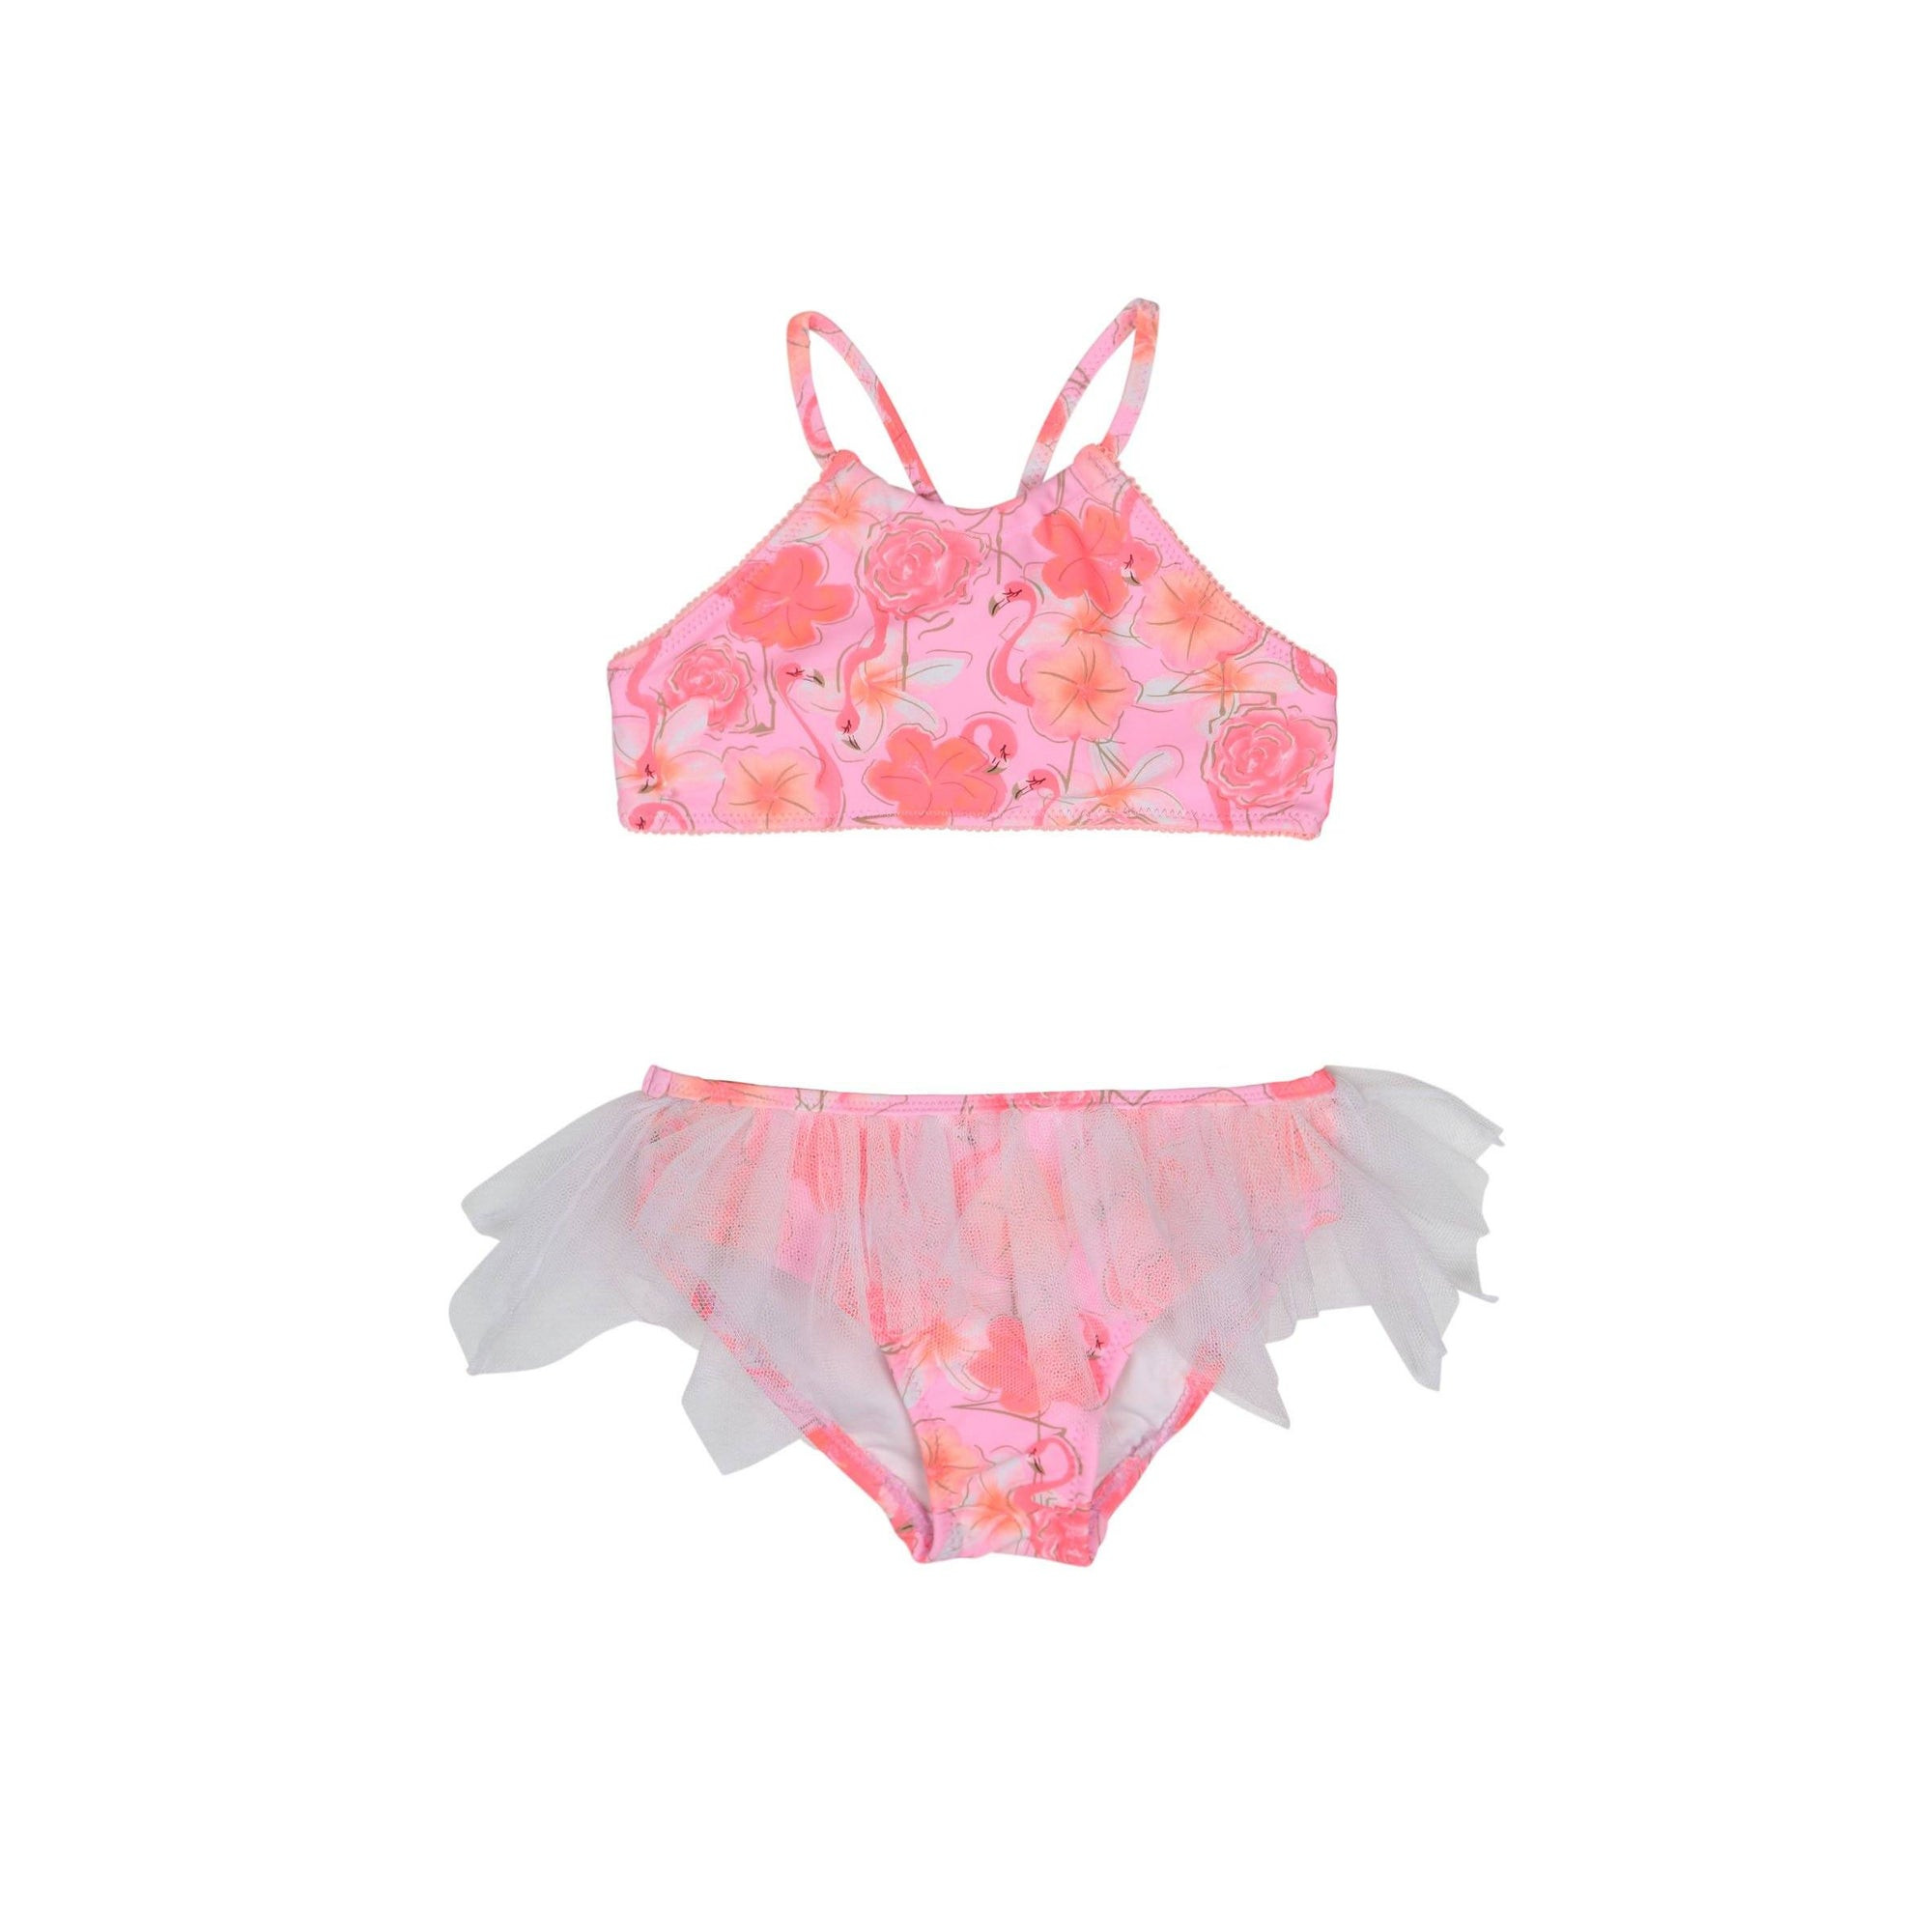 Miss Flamingo Tutu Bikini BABY SWIMWEAR SALTY INK 0 Flamingo